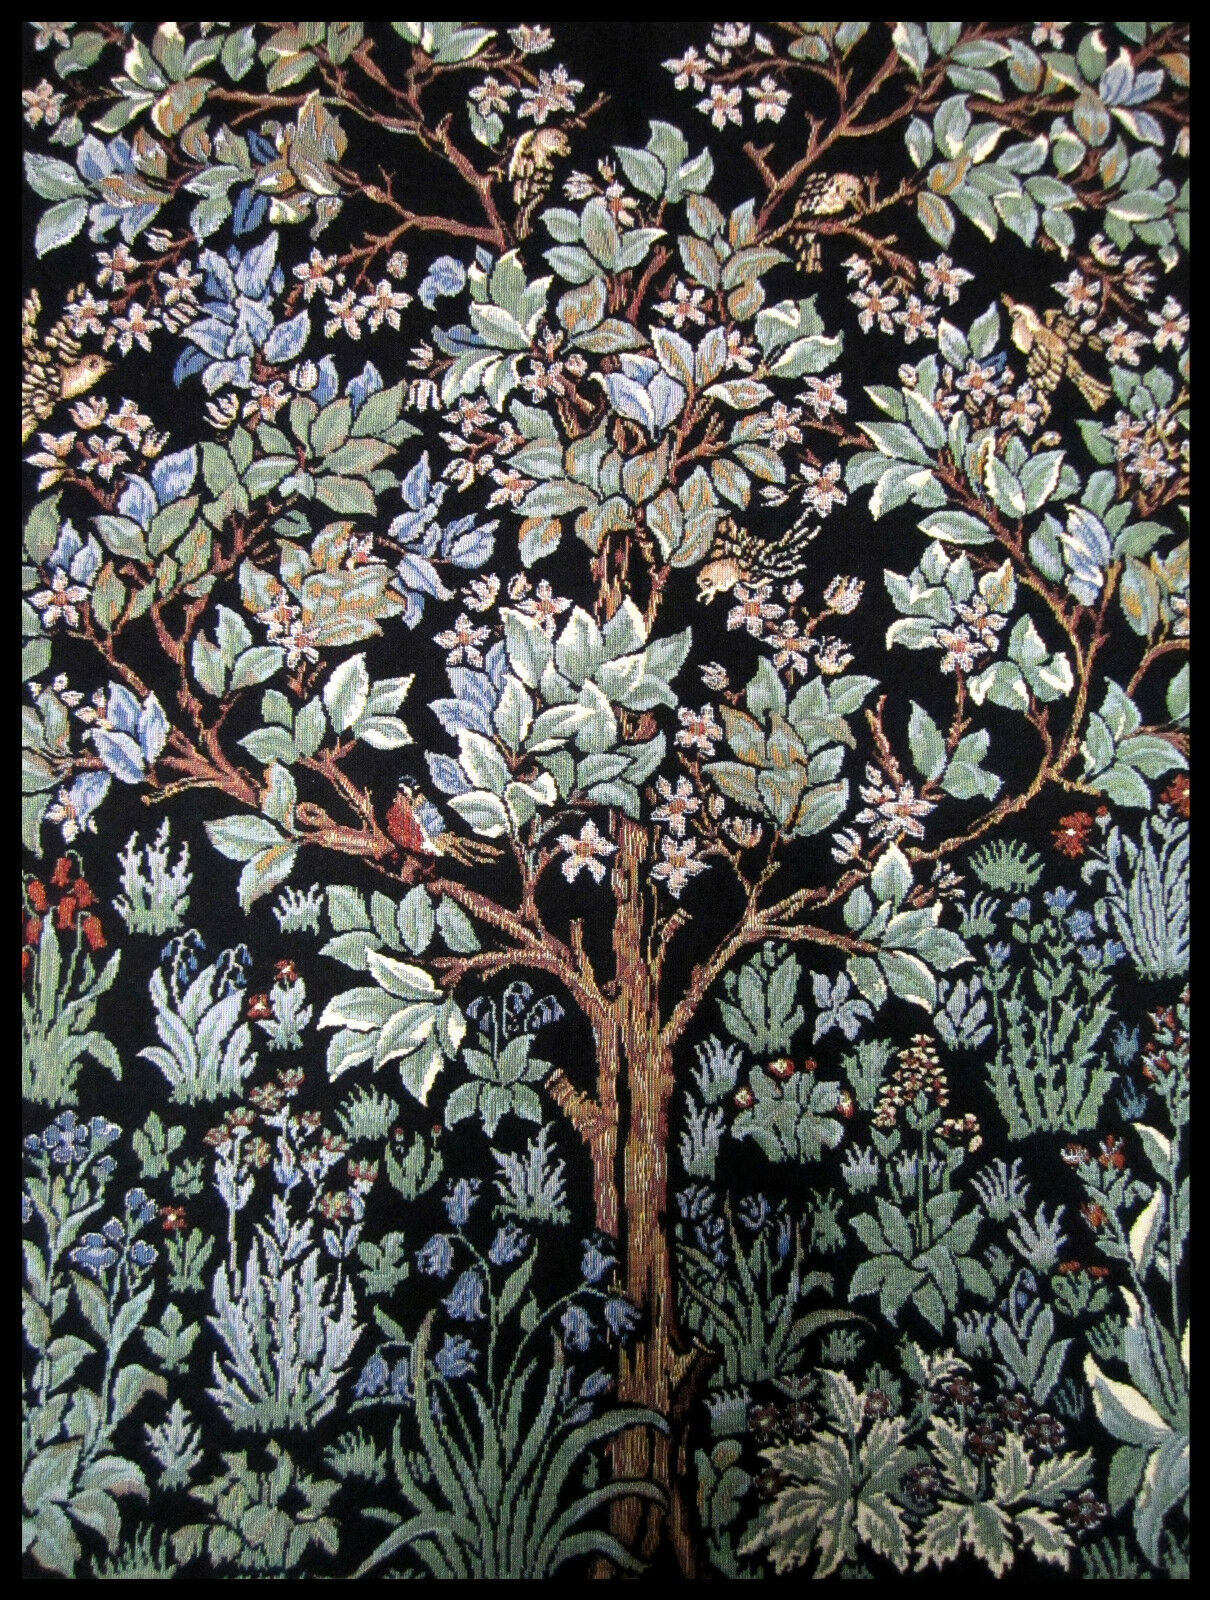 wandteppich aus italy gobelin william morris lebensbaum tree of life 70x90 cm ebay. Black Bedroom Furniture Sets. Home Design Ideas